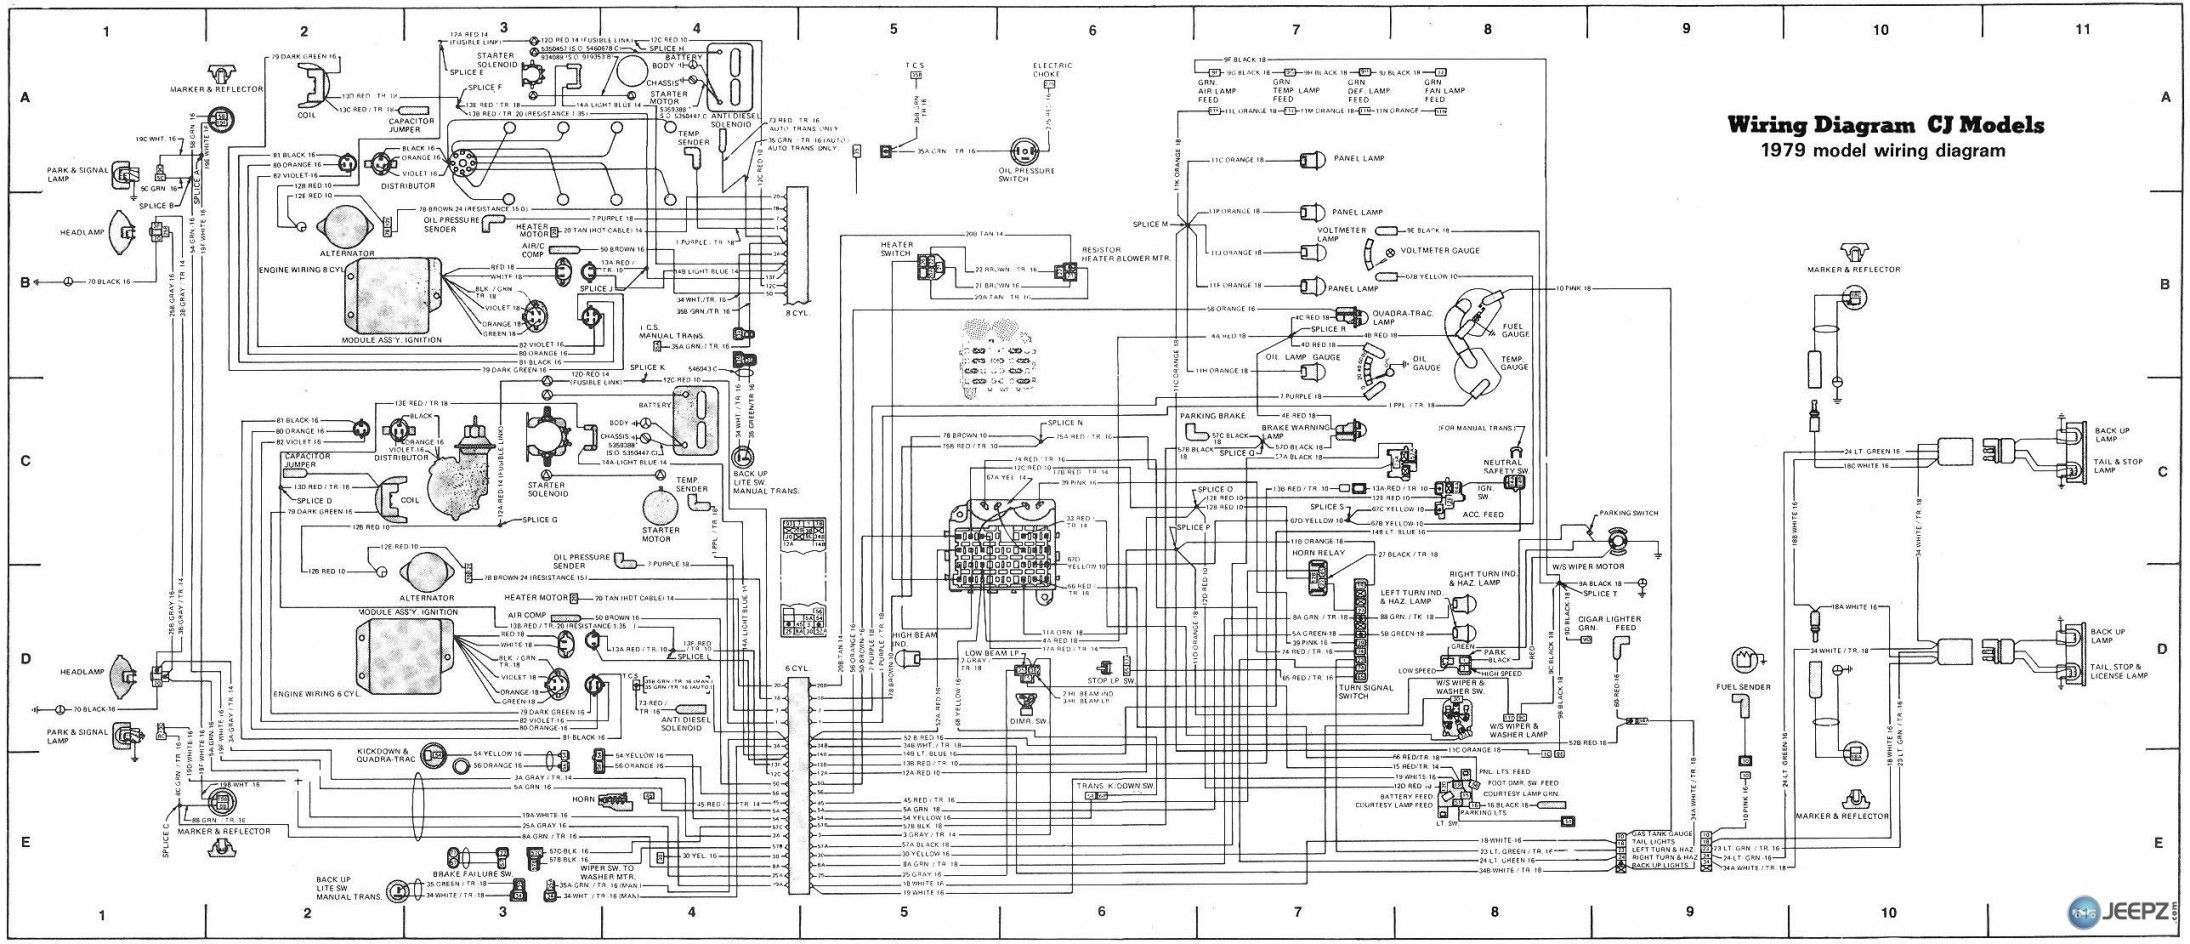 79 jeep cj7 wiring diagram detailed schematics diagram rh keyplusrubber com 1967 Jeep CJ5 Ignition Wiring On a A Jeep CJ5 Headlight Wiring Diagrams